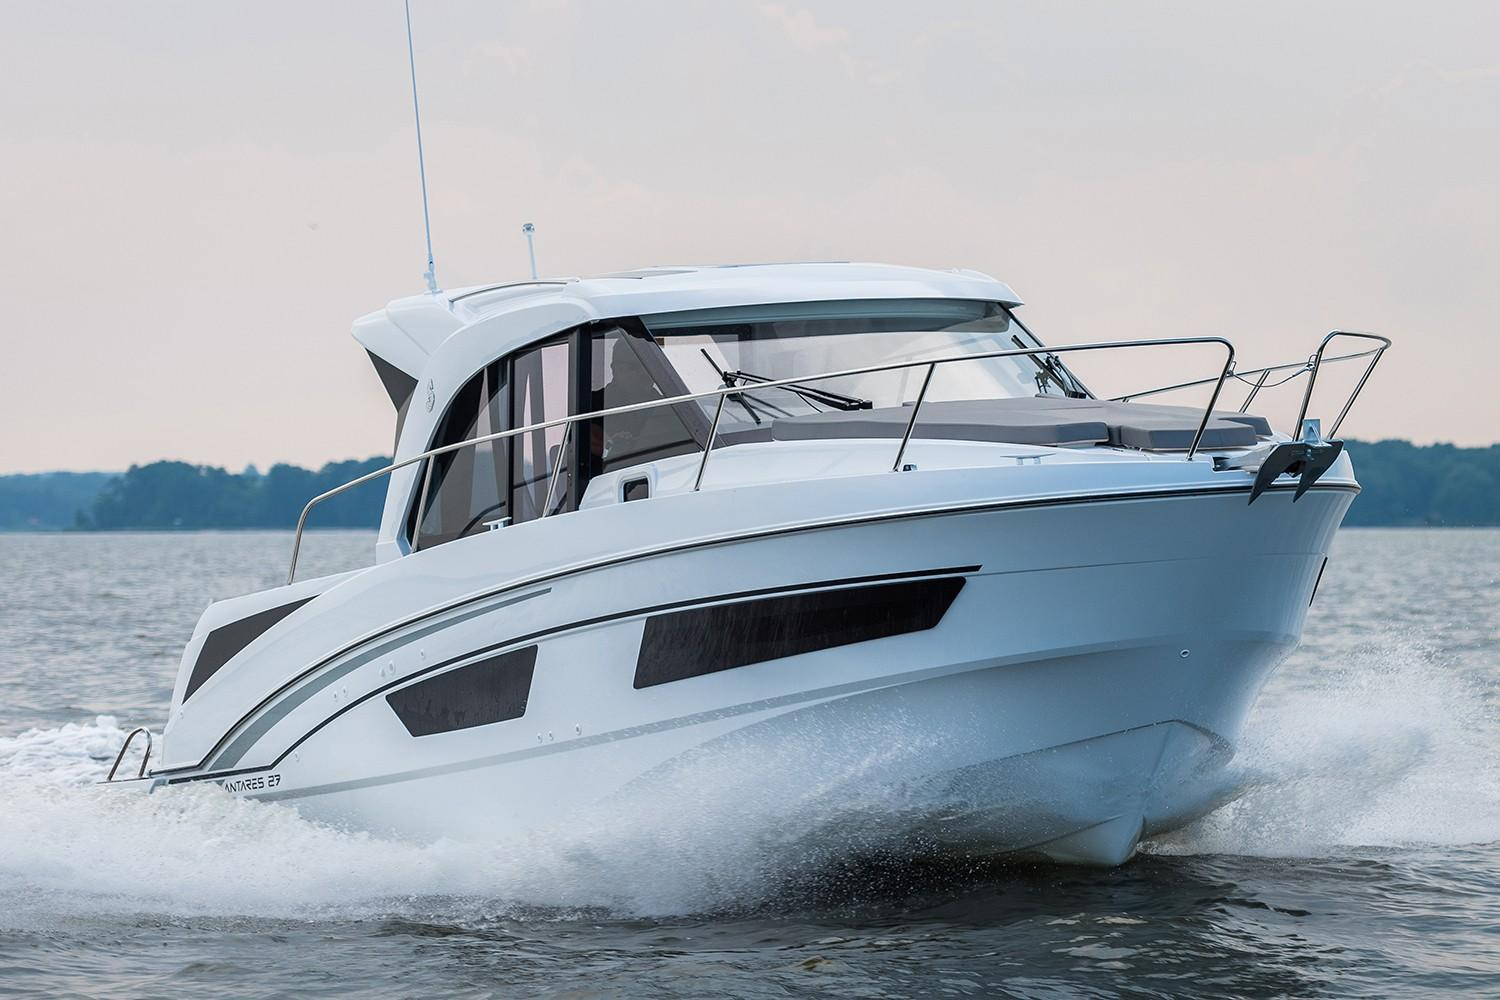 2019 Beneteau America Antares 27 Power Boat For Sale Www